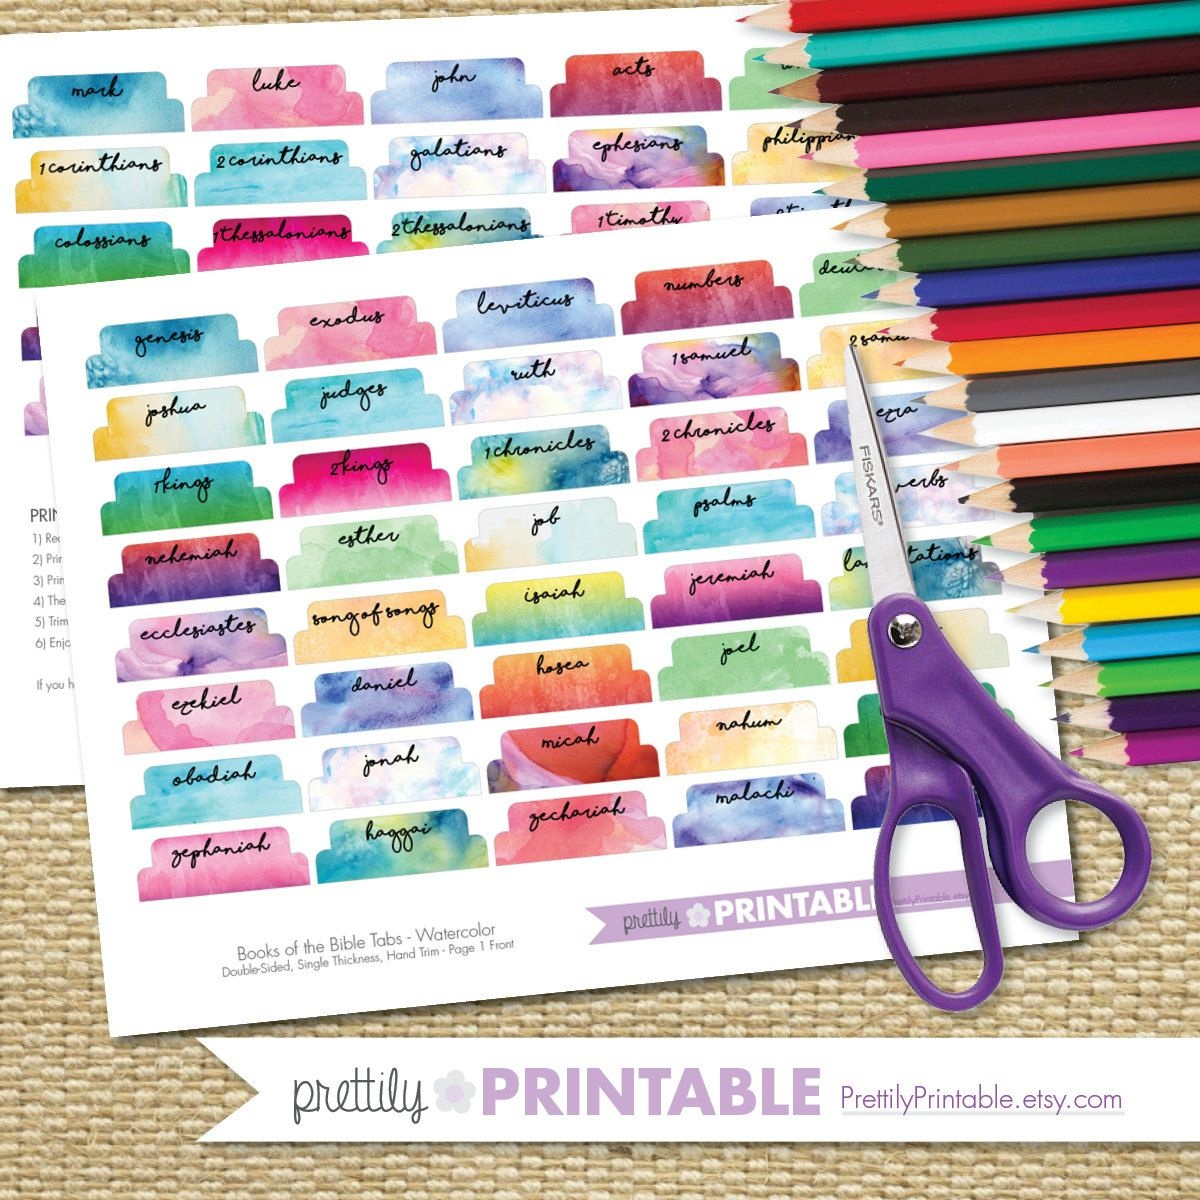 Printable Books Of The Bible Tabs - Watercolor (For Hand Trimming - Free Printable Bible Tabs